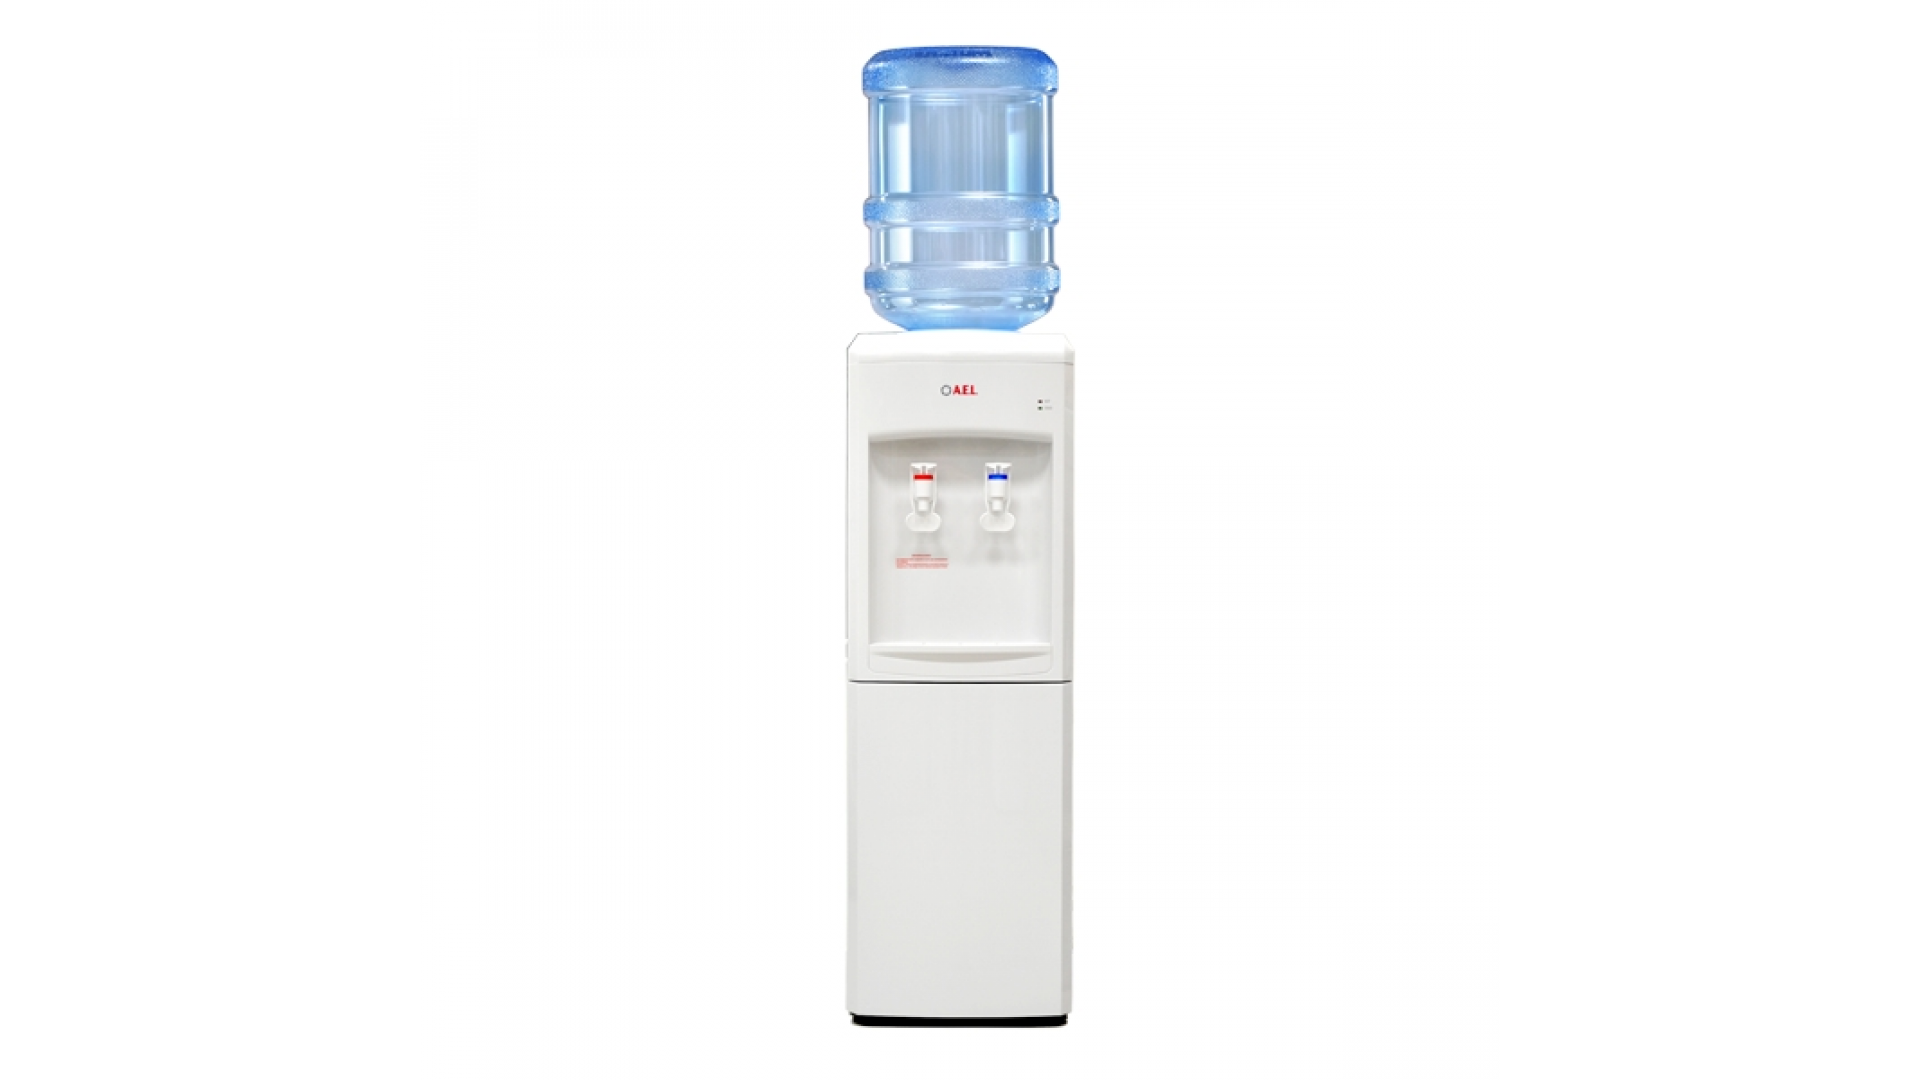 water-dispenser-lc-ael-61c